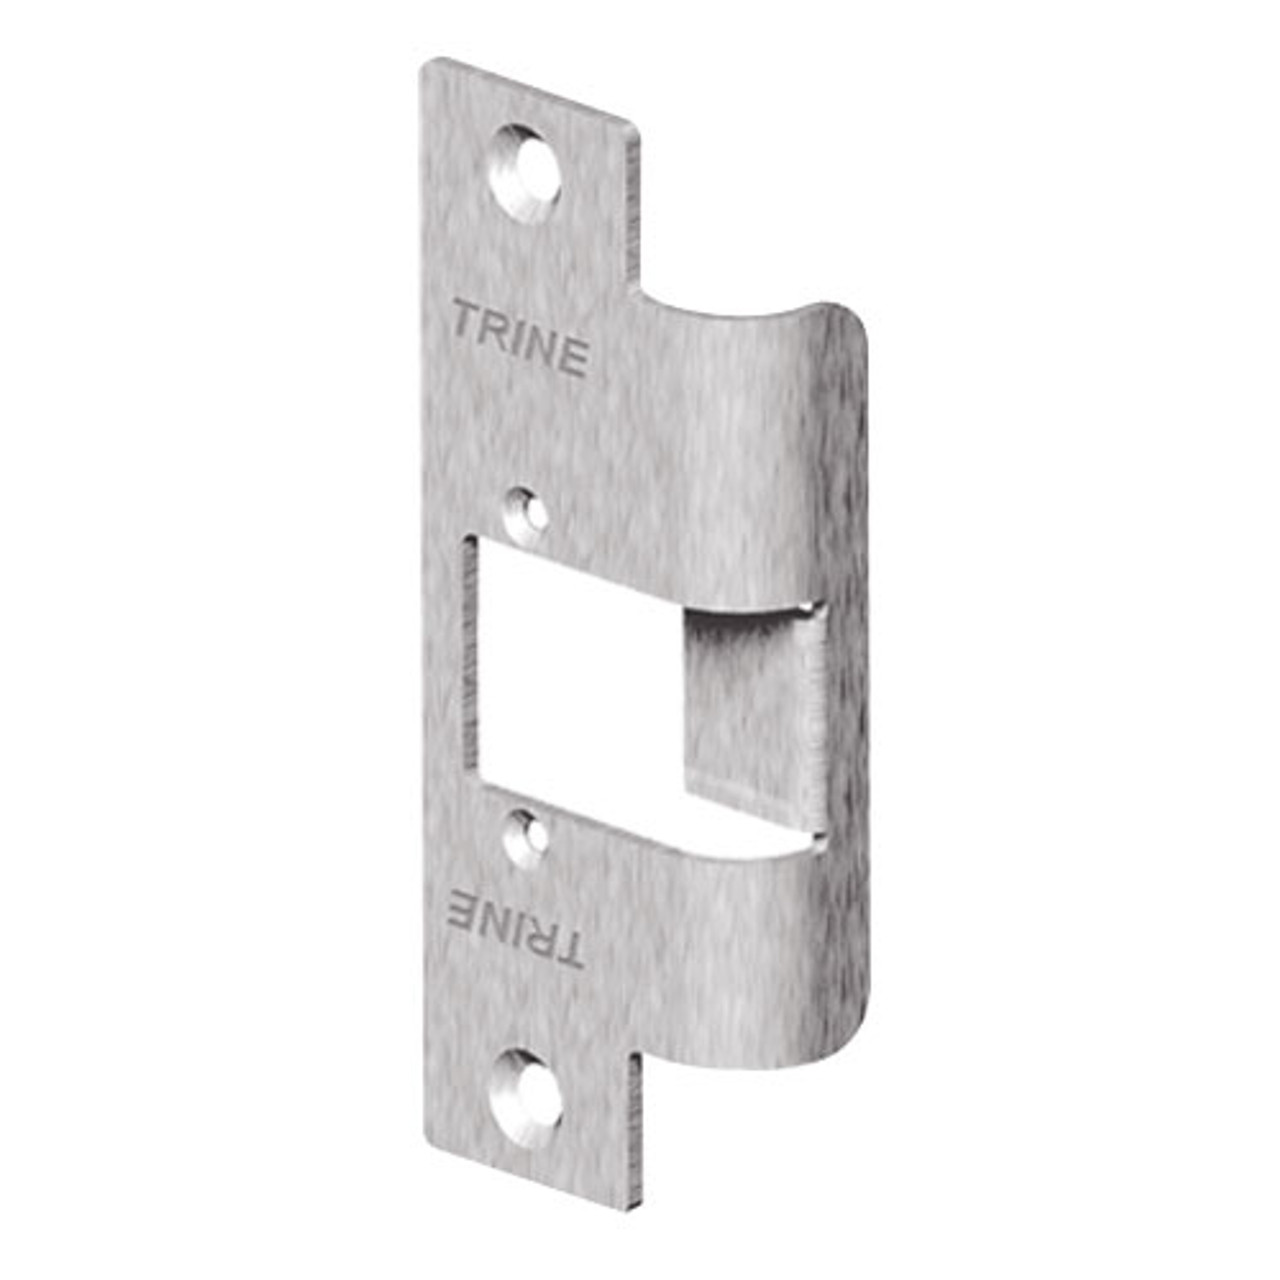 478RO-RD-US32D Trine 3000 Series Faceplate with Radiused Corners in Satin Stainless Steel Finish